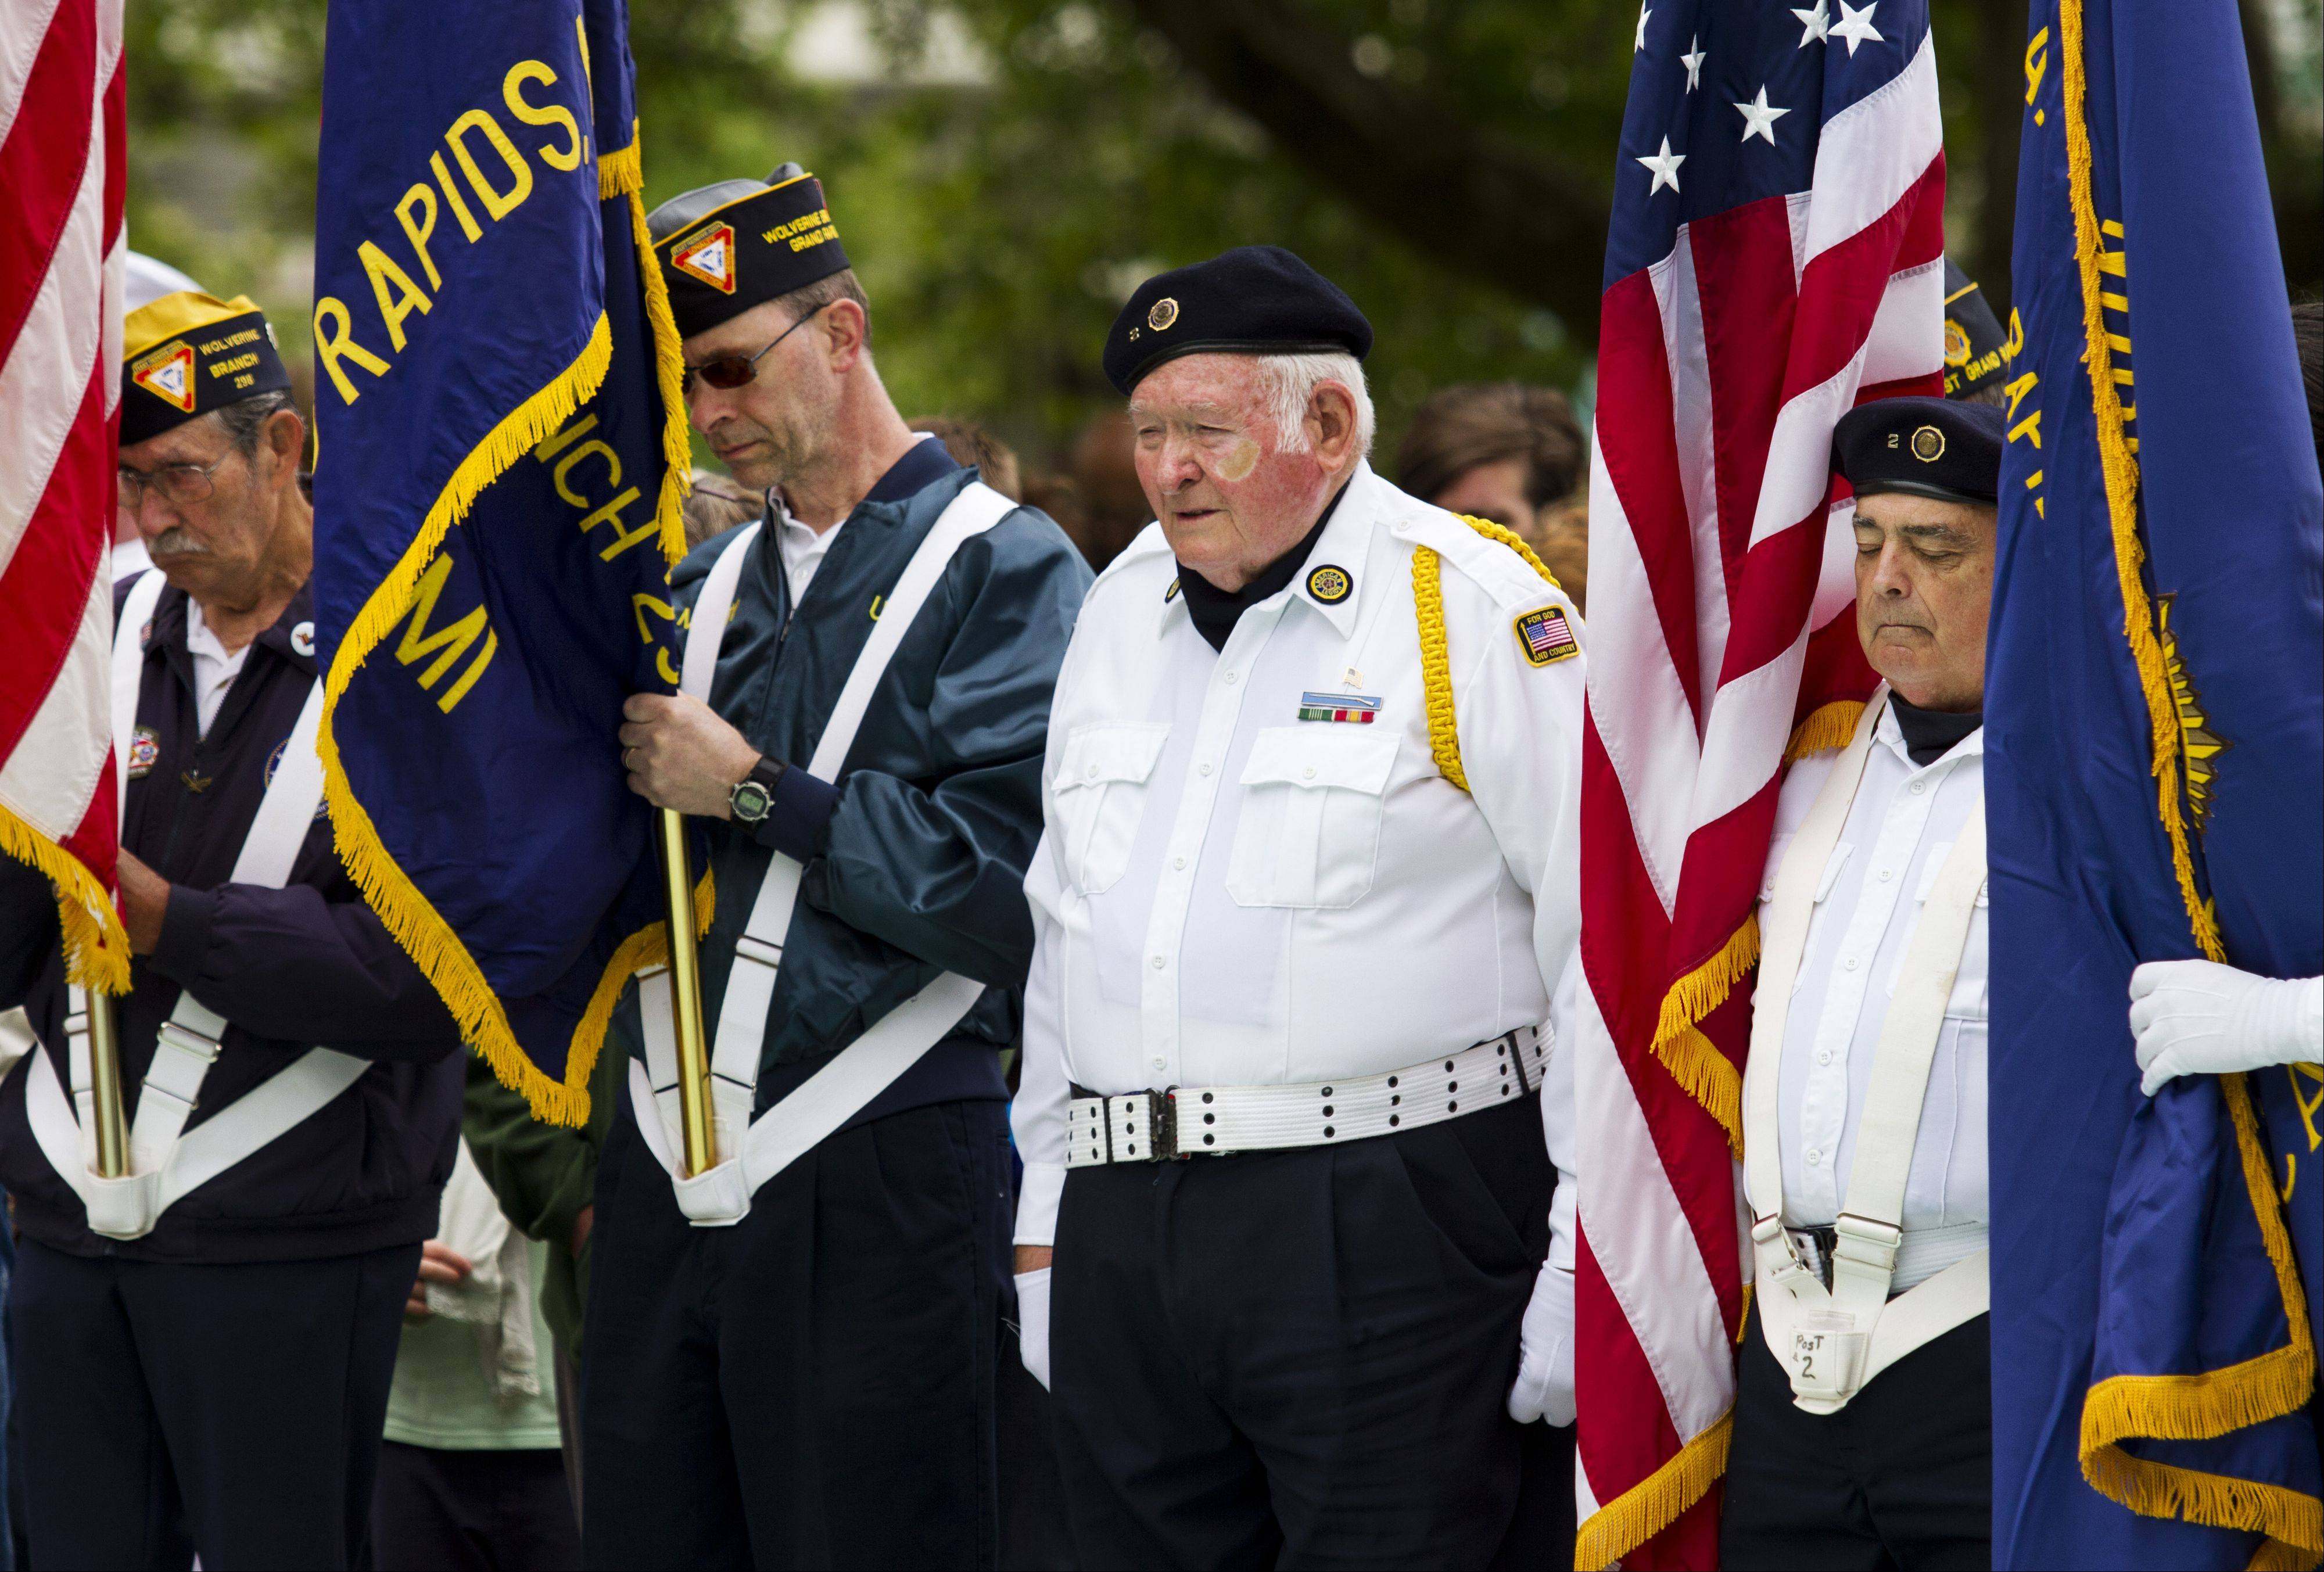 From left, Bob Coukendall, Marty Posekany from the Fleet Reserve Association and American Legion Post 2 members Bill Brinkman and Scott Harvey attend a Memorial Day ceremony at Veterans Memorial Park Monday, May 27, 2013 in Grand Rapids Mich.